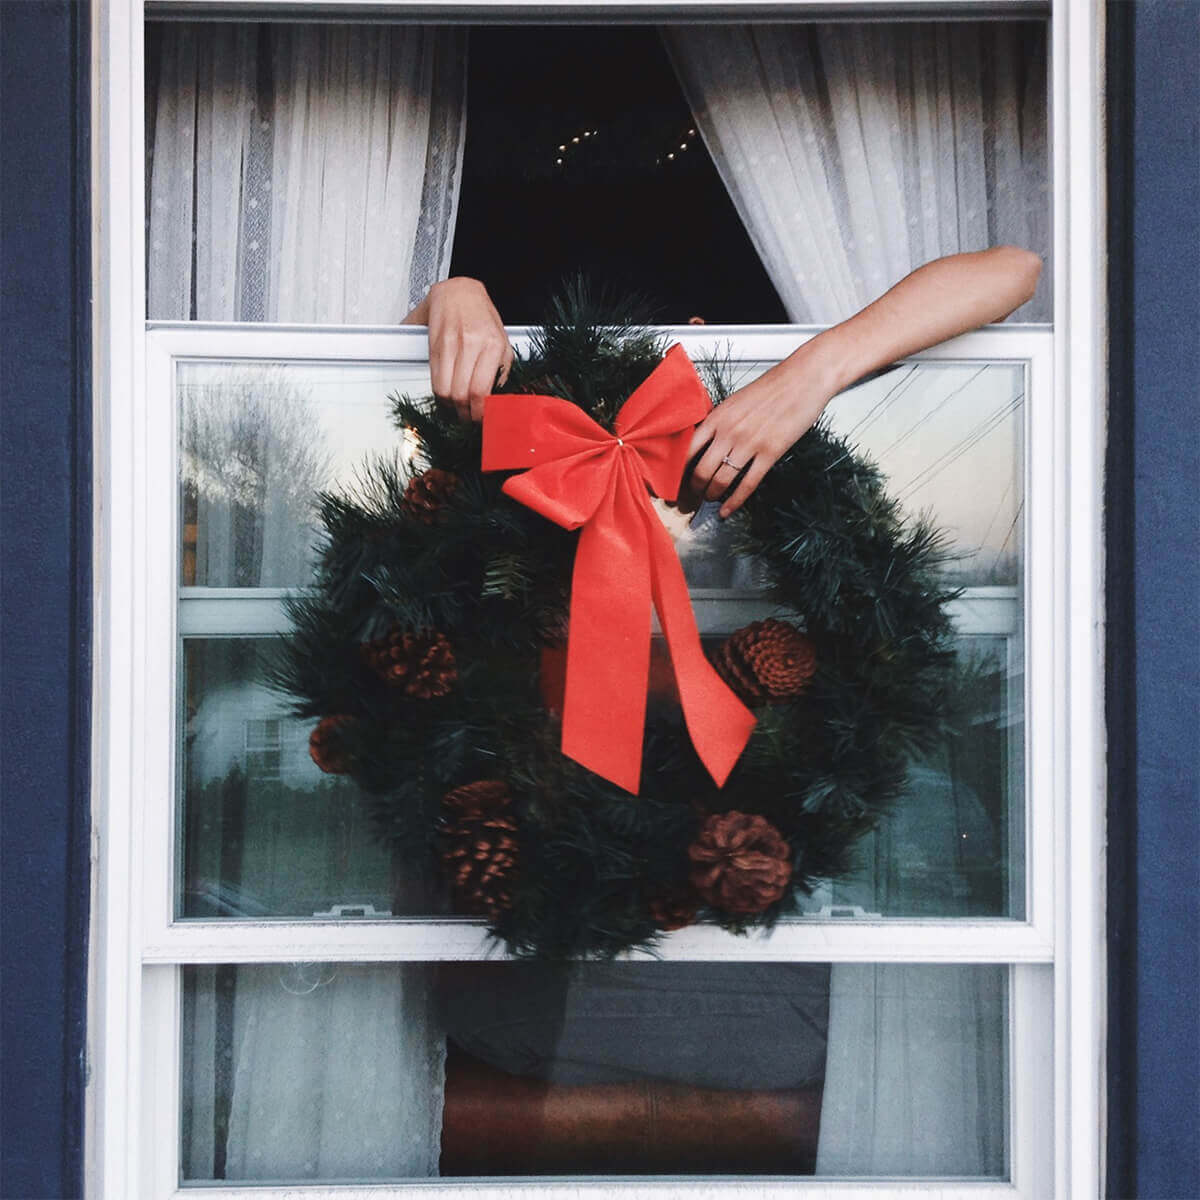 Hands holding a wreath out the window